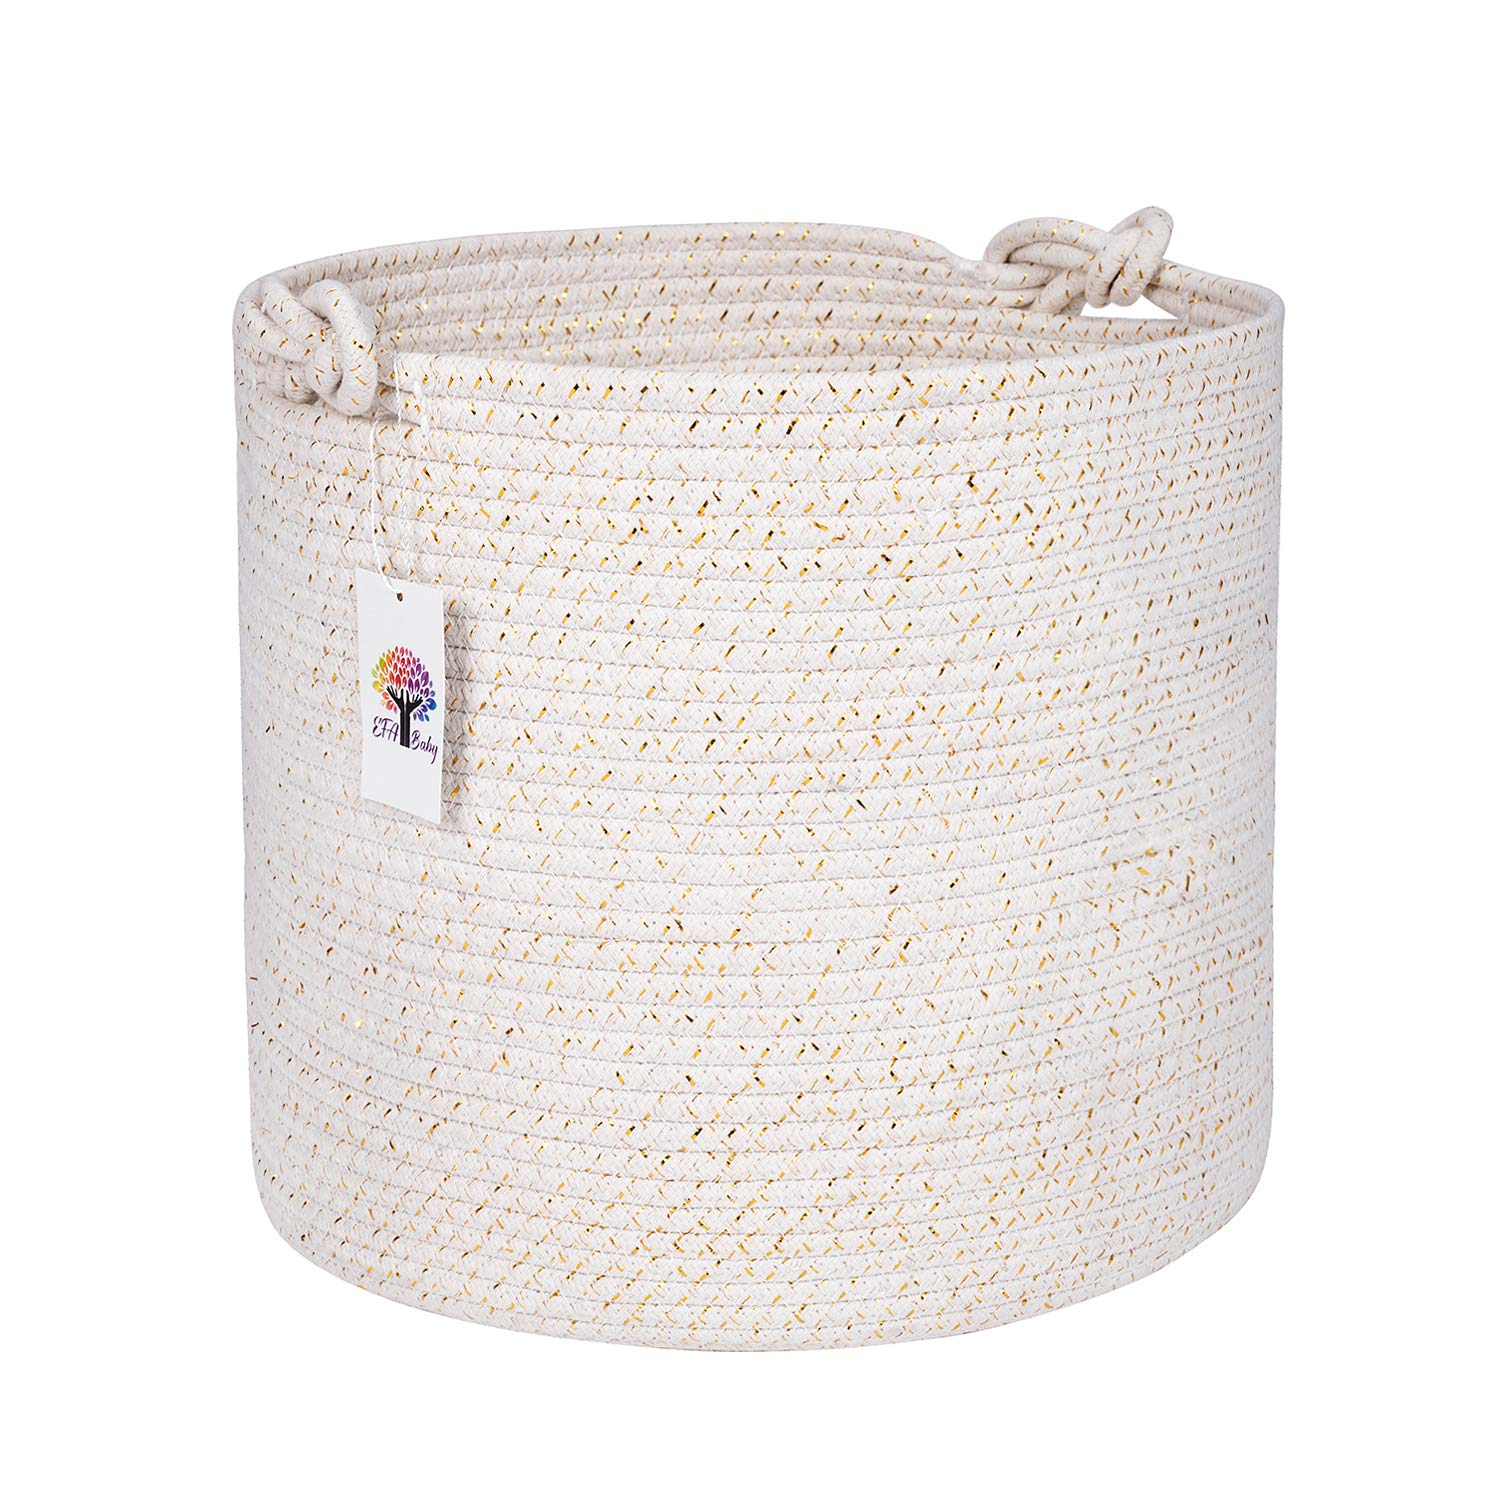 Round Woven Cotton Rope Basket: Living Room, Nursery, Laundry Hamper, Towel/ Pillow/ Blanket Storage, Toy Bin; Decorative Baskets, Baskets for Organizing (EFA Baby)